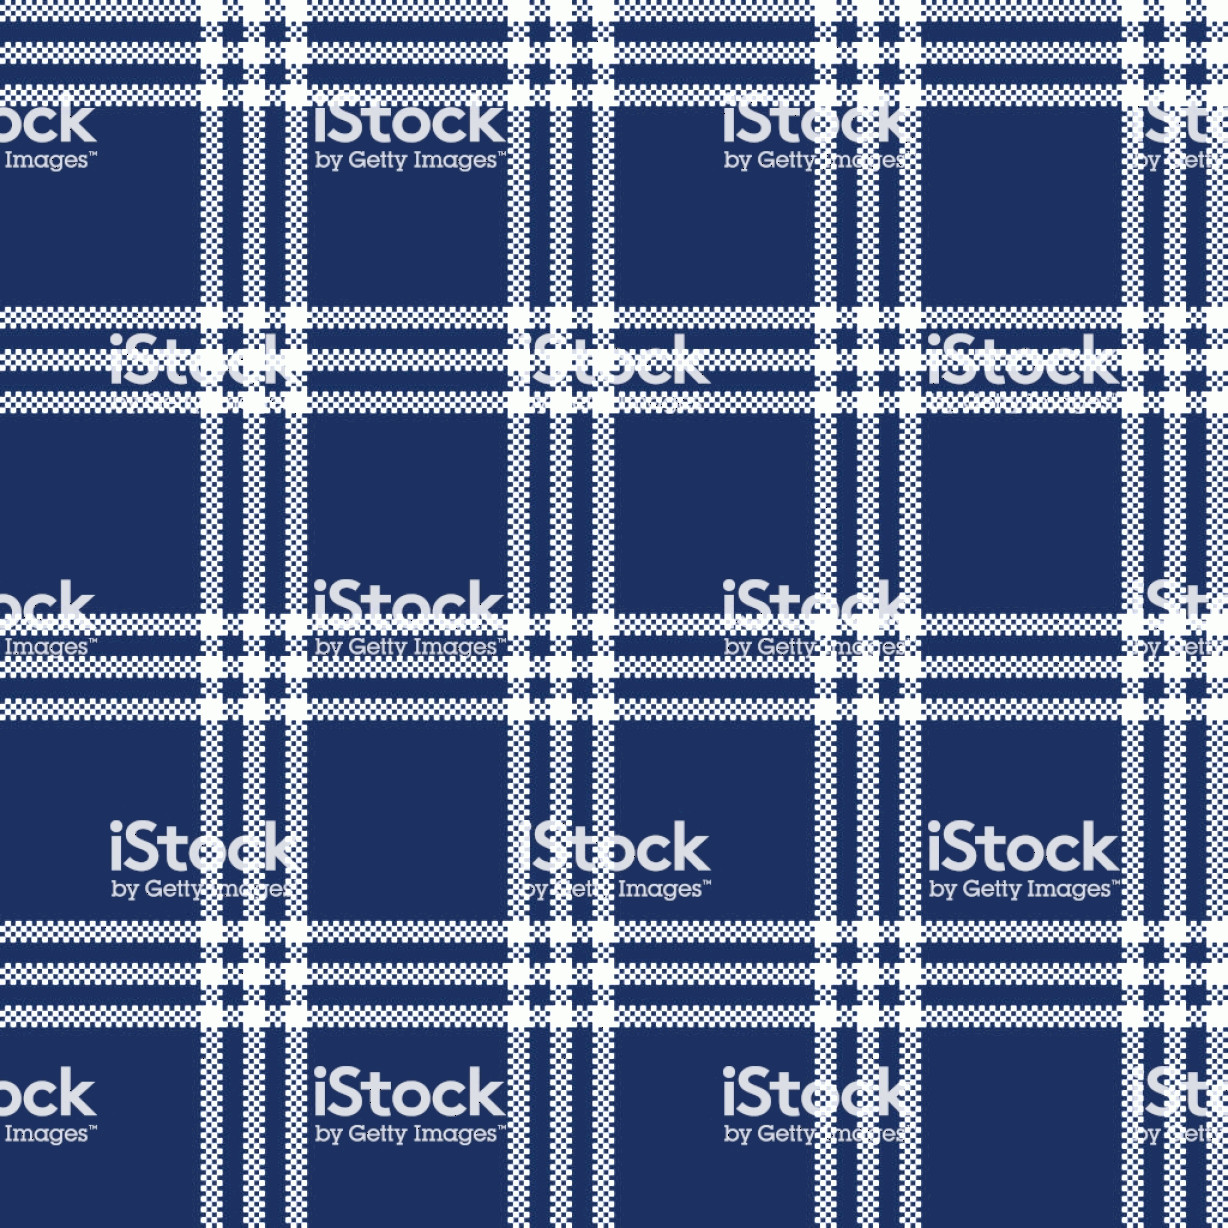 Plaid Vector: Blue And White Plaid Pattern Vector Seamless Pixel Tartan Check Plaid For Fashion Gm